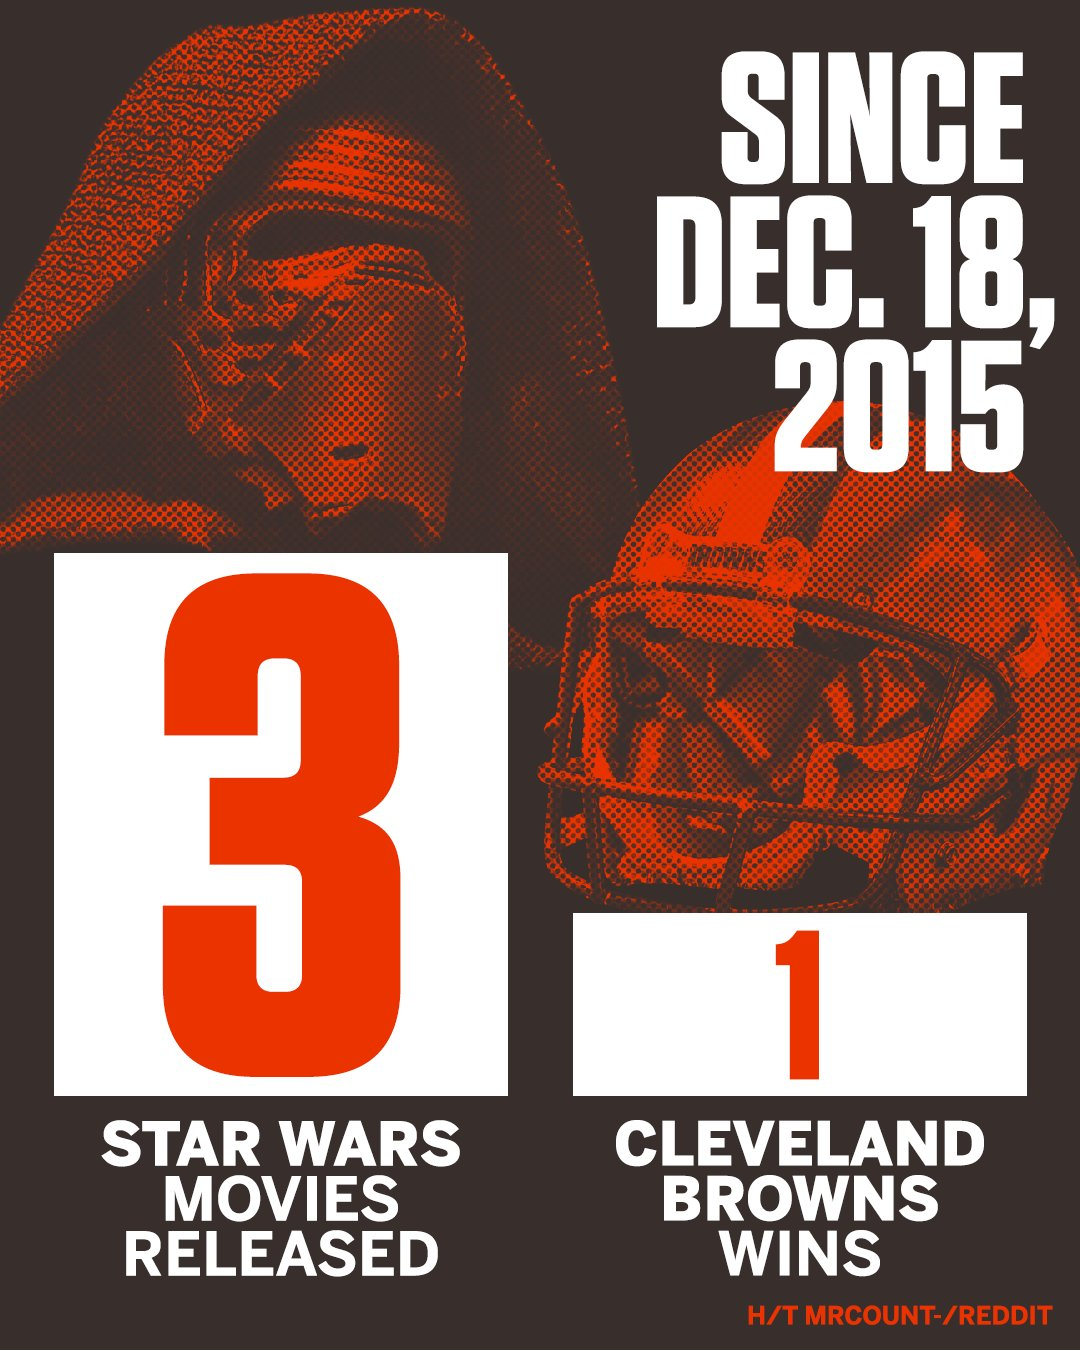 The Force has not been with the Browns. https://t.co/1QGCwzGCkU